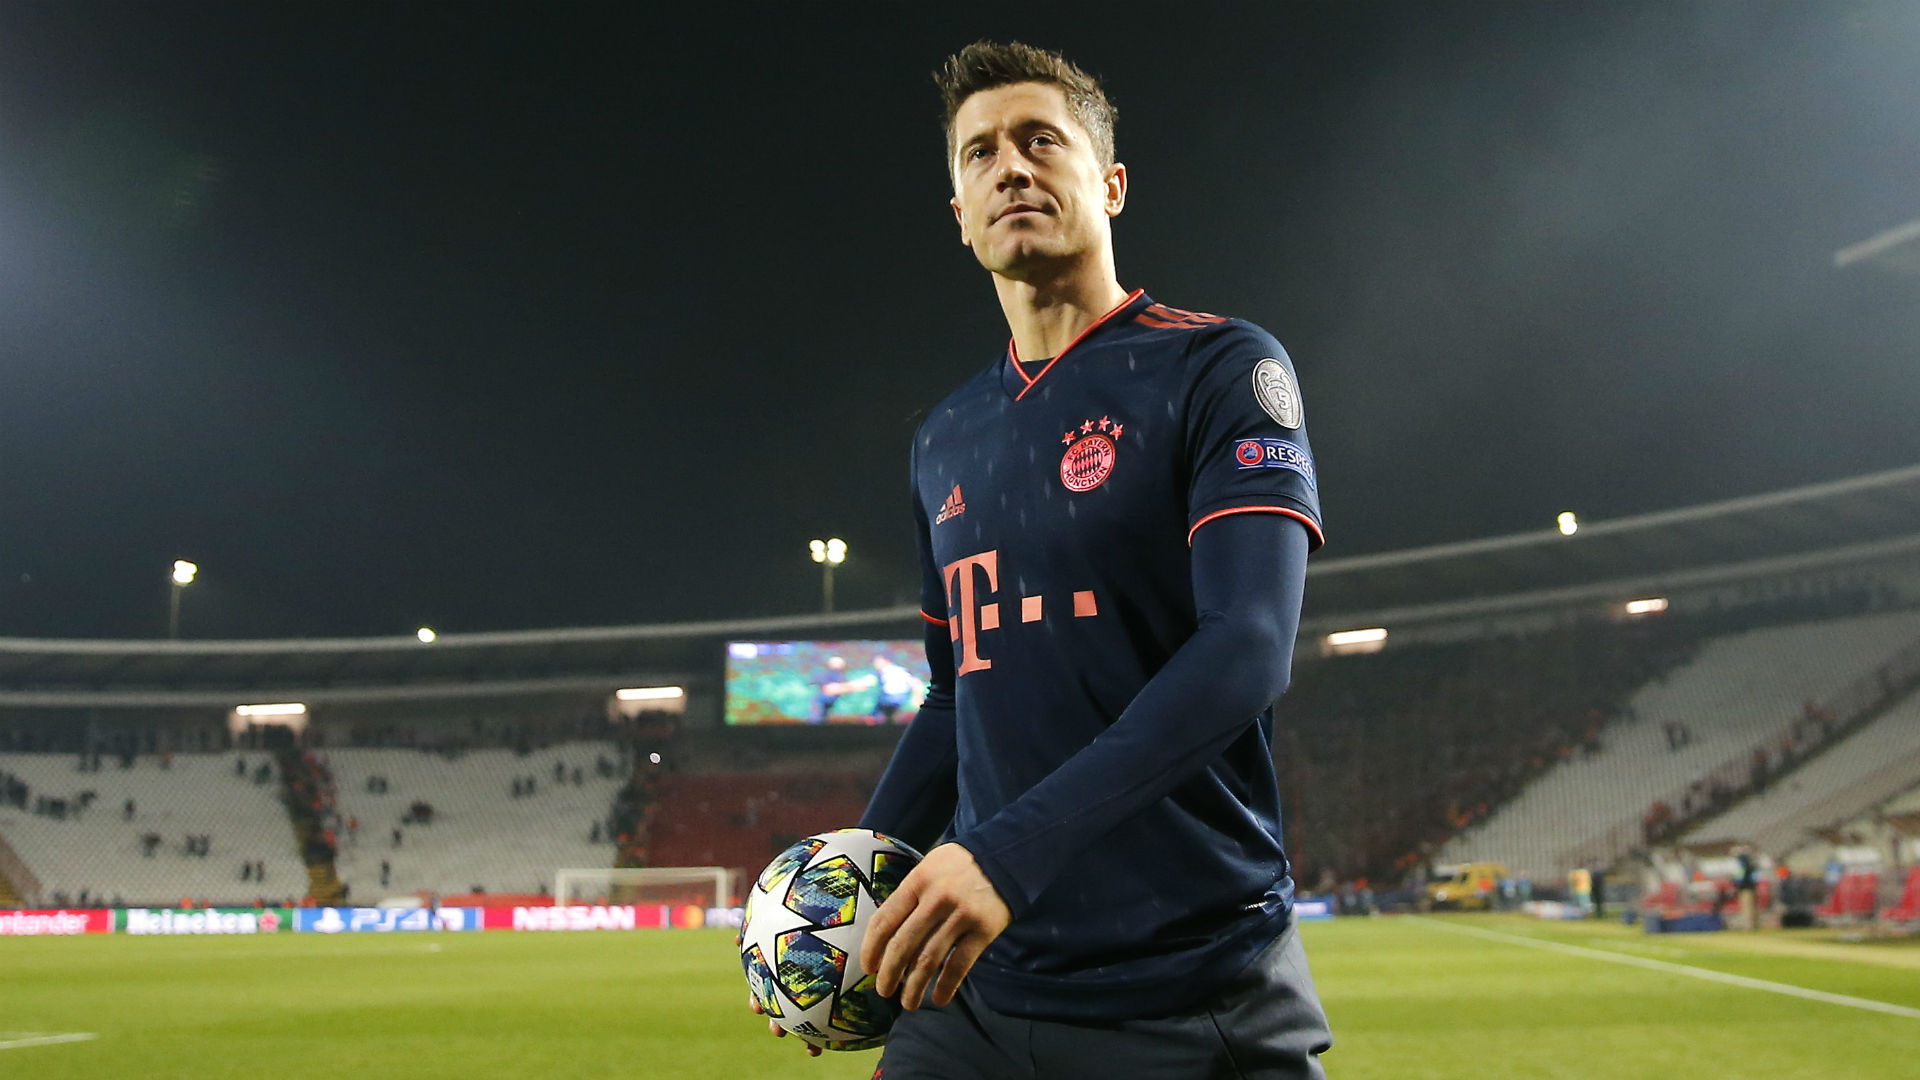 Coronavirus Lewandowski Follows Goretzka And Kimmich With Donation